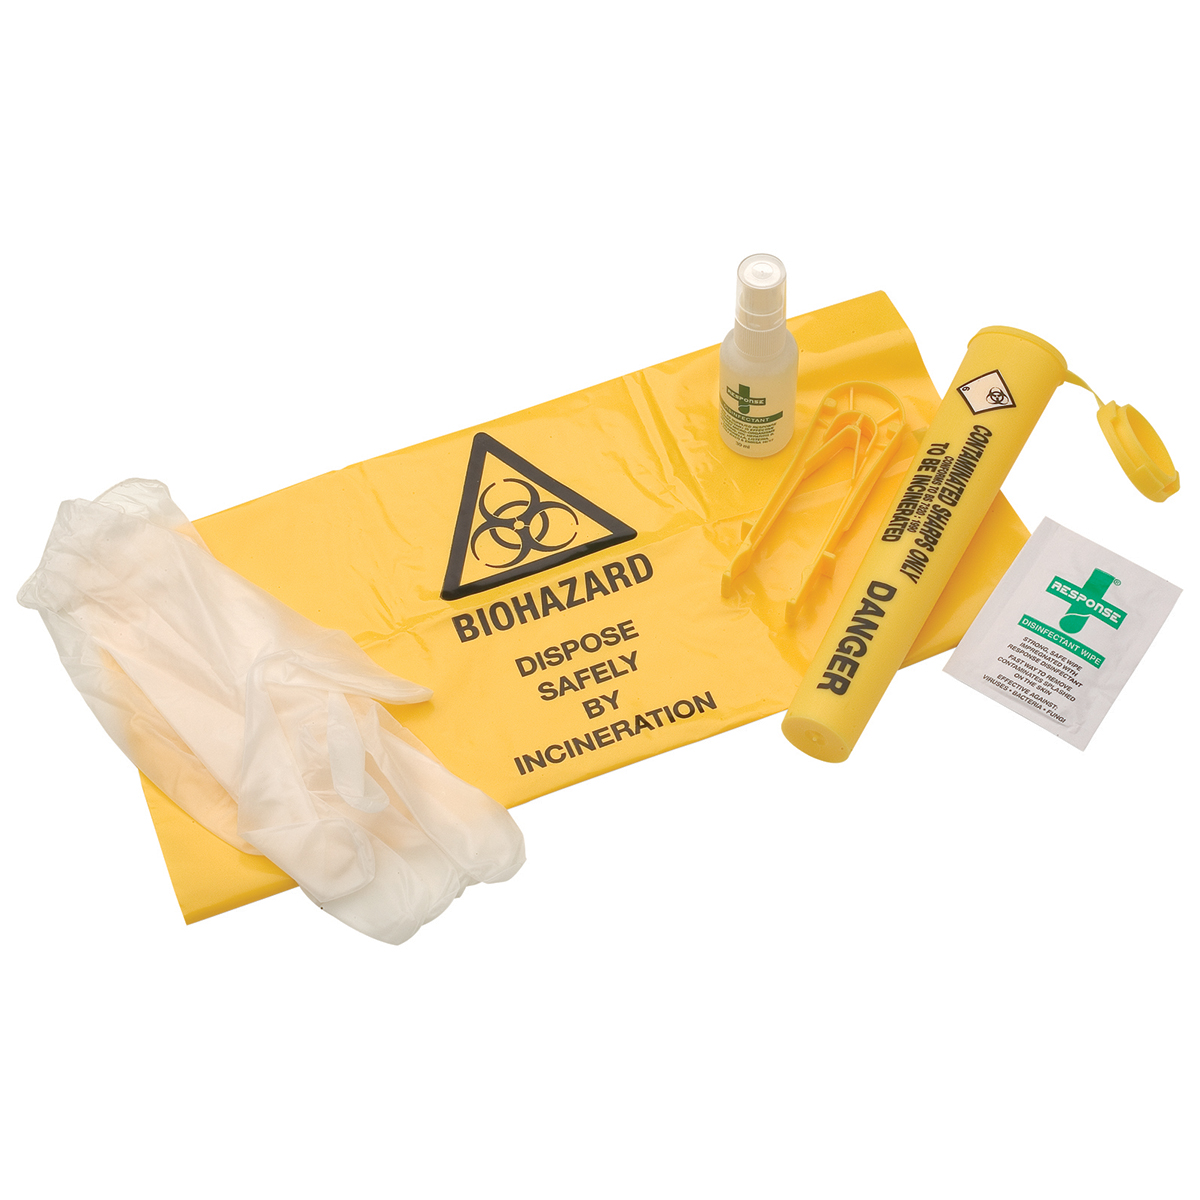 Single Use Sharps Disposal System with Spray